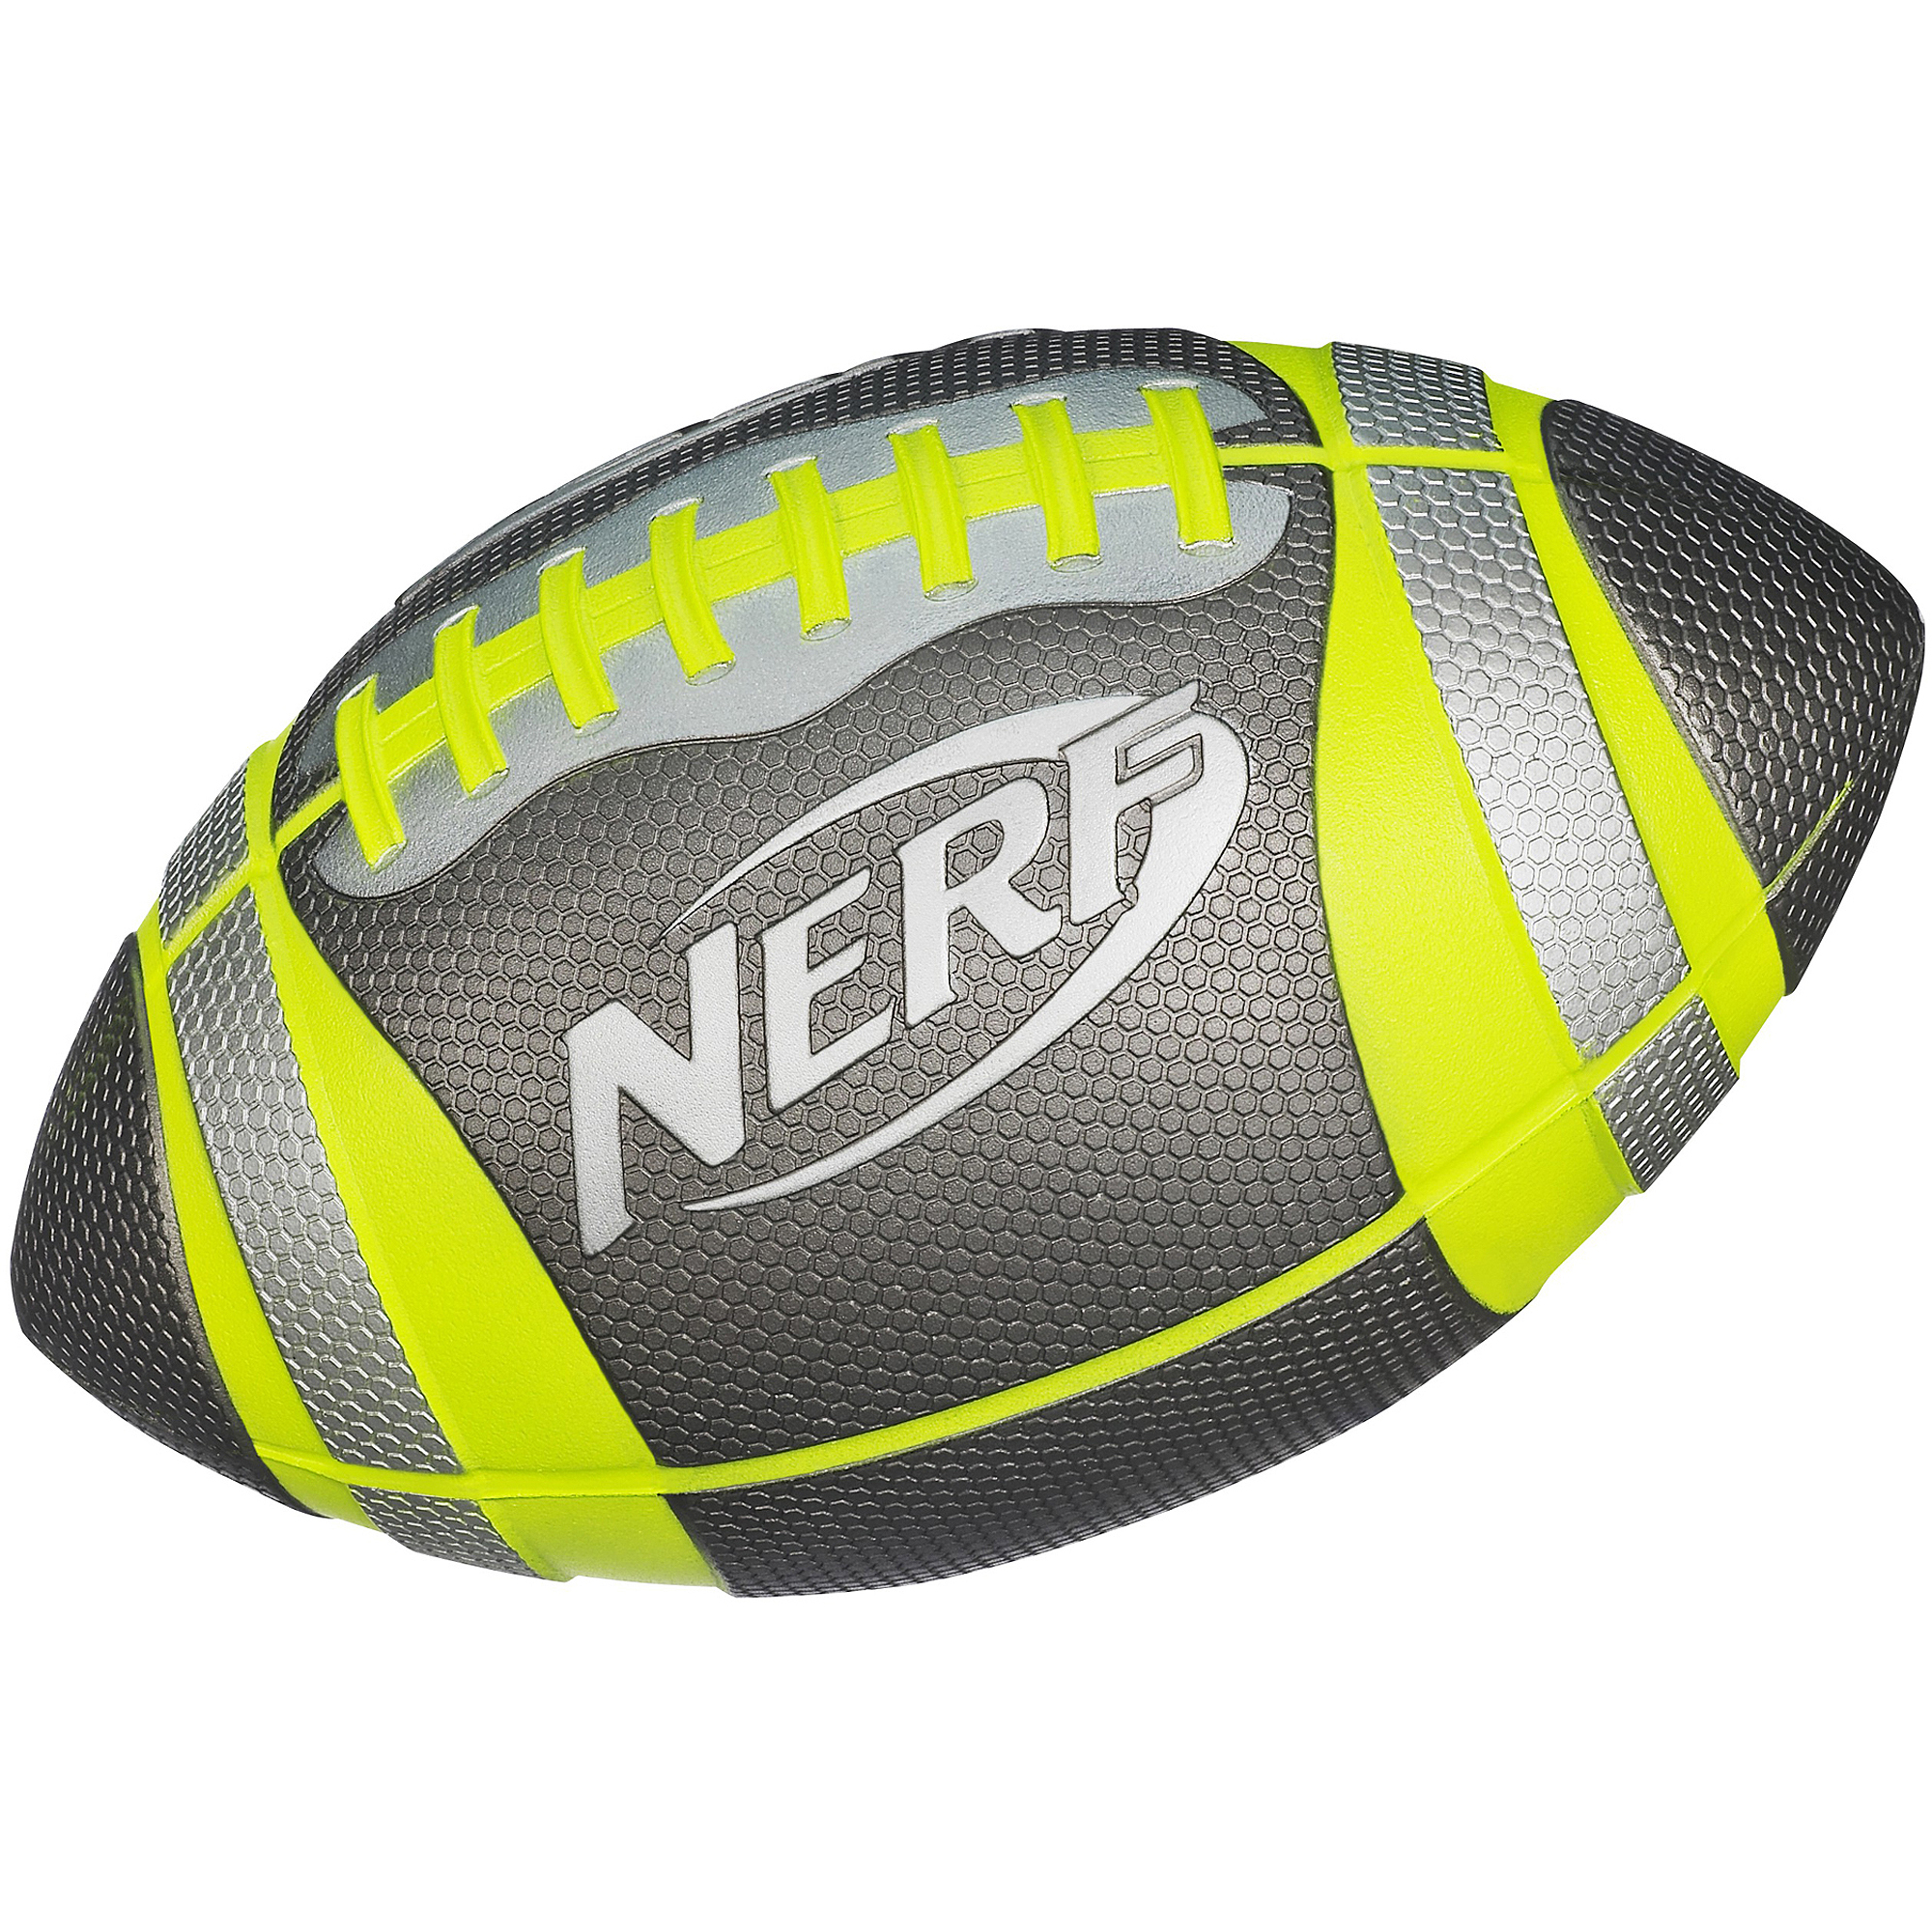 Nerf N Sports Pro Grip Football Walmart